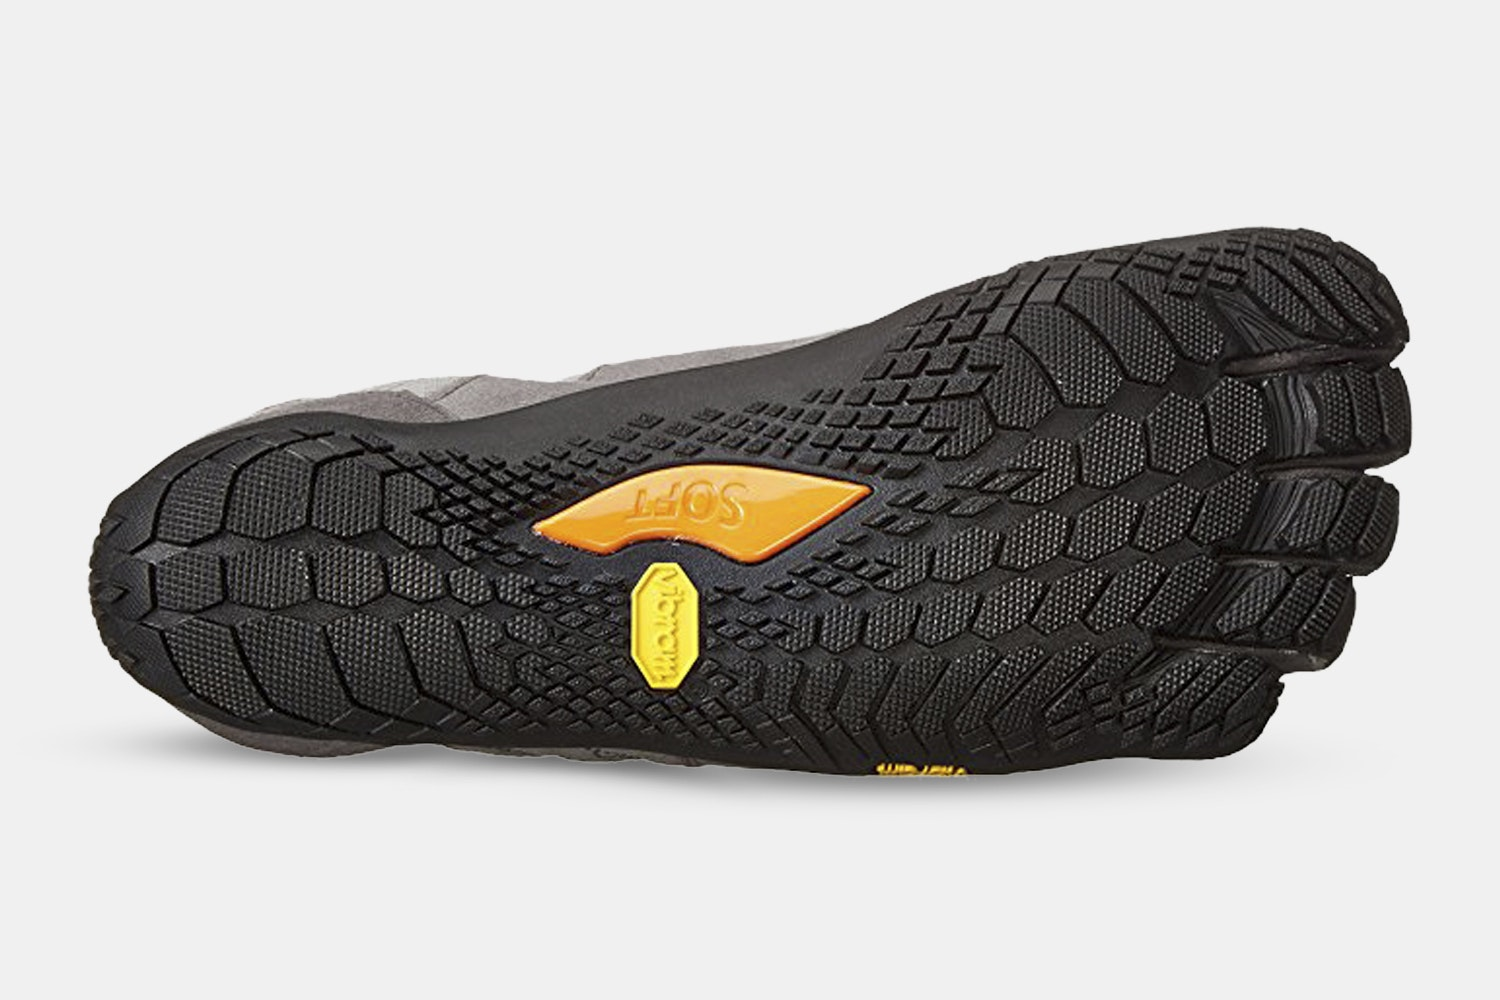 Vibram Five Fingers Trek Ascent Shoes